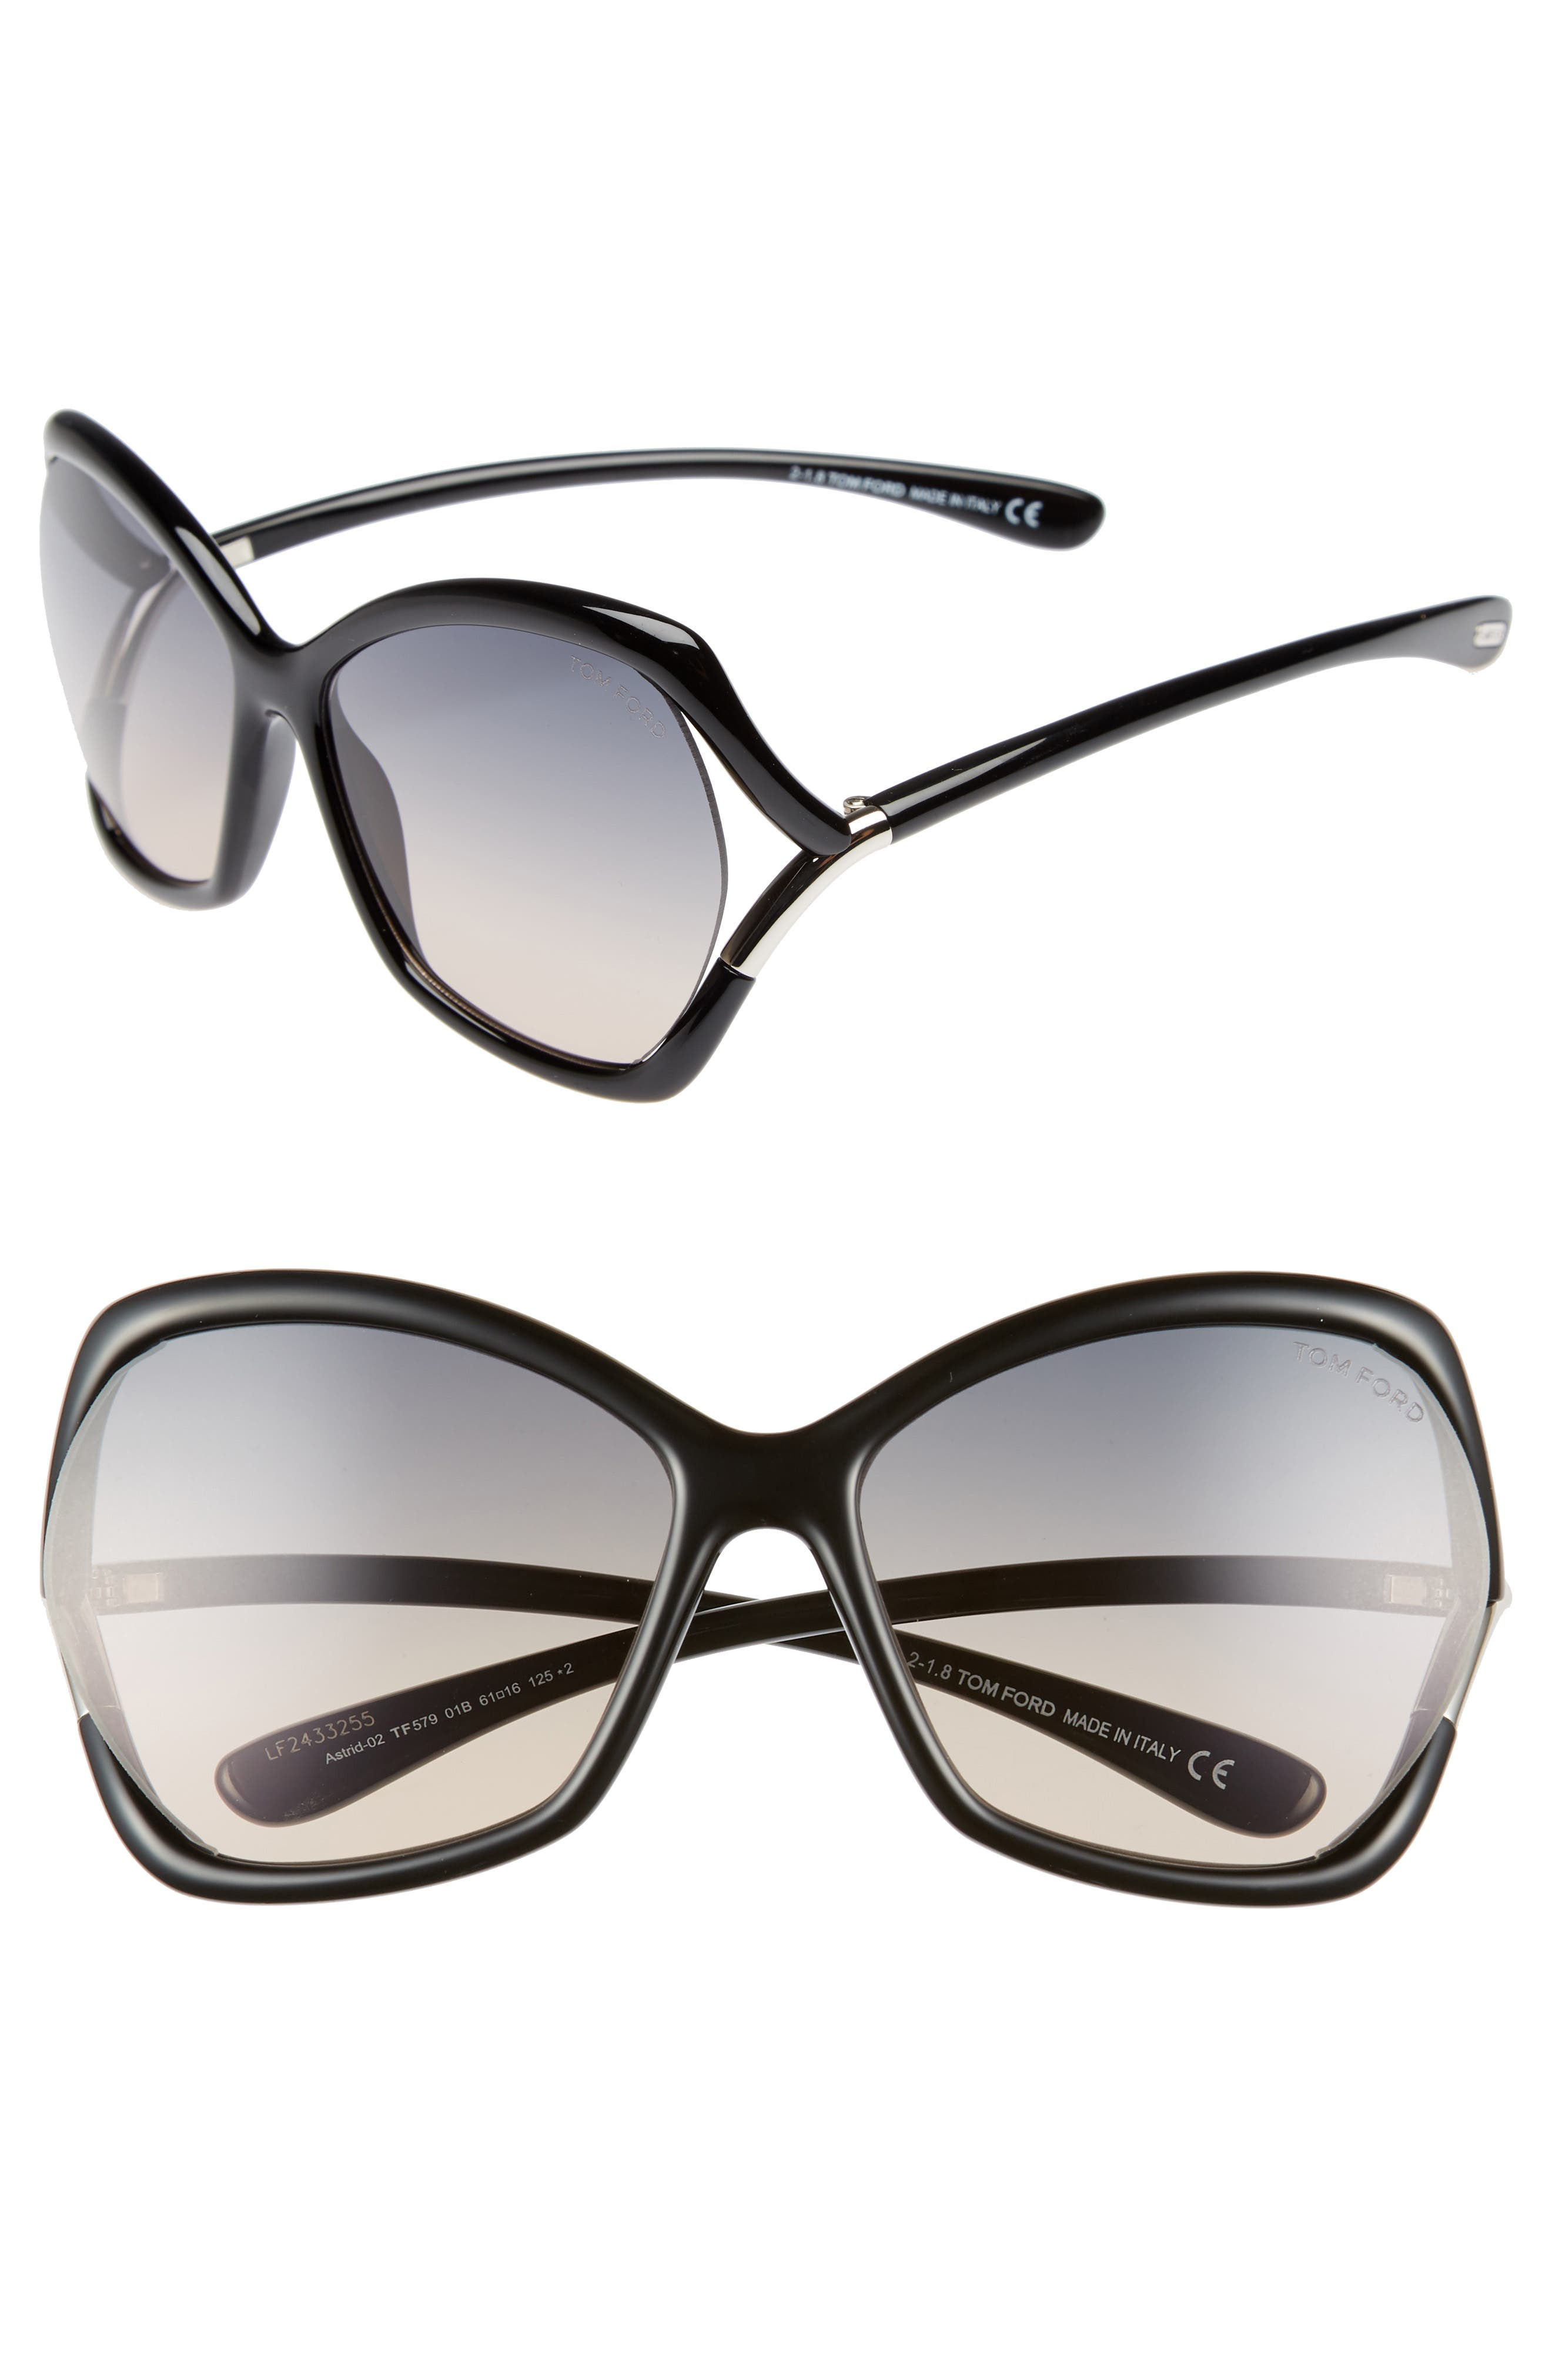 Tom Ford Astrid 61Mm Geometric Sunglasses - Shiny Black/ Gradient Smoke